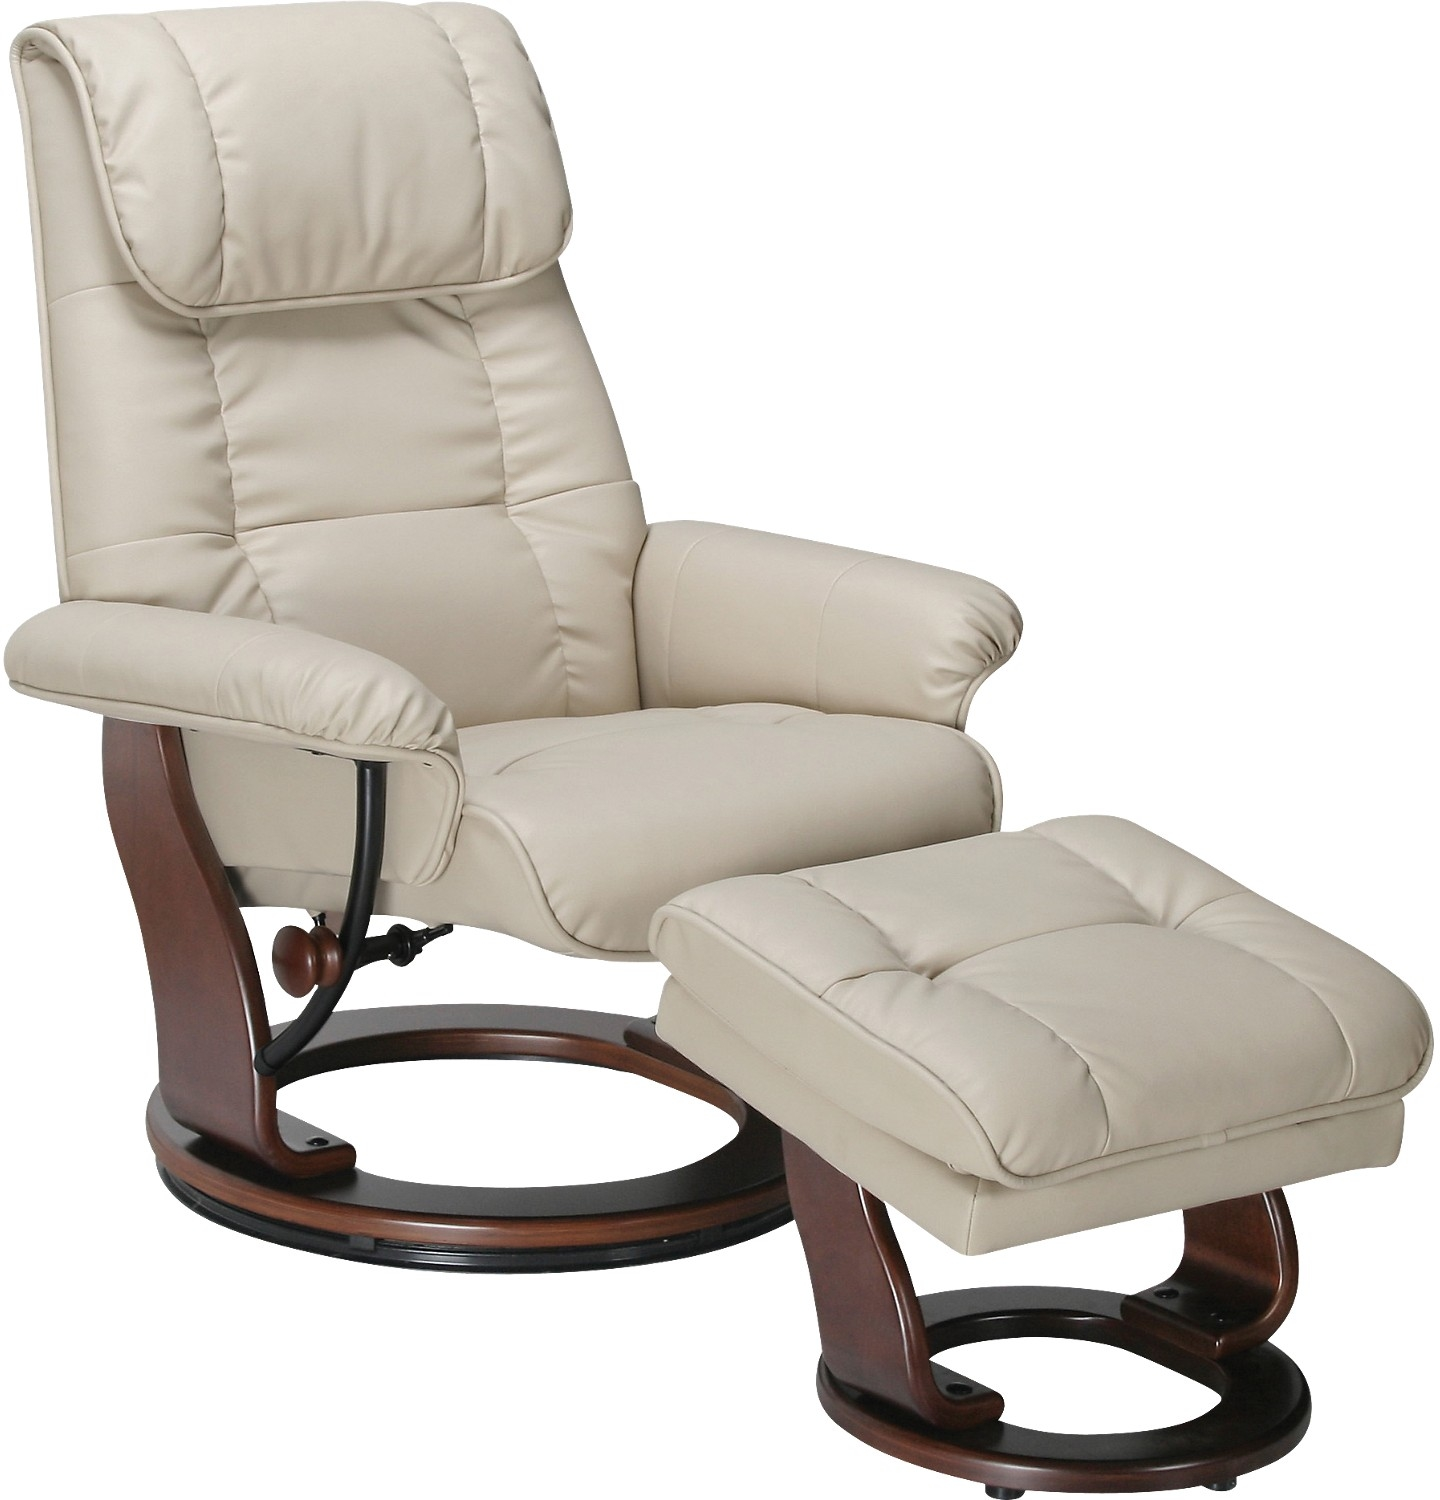 reclining chairs bautiful reclinable chair to complete chairs appeal reclining design  massage recliner chair GXHJCKO